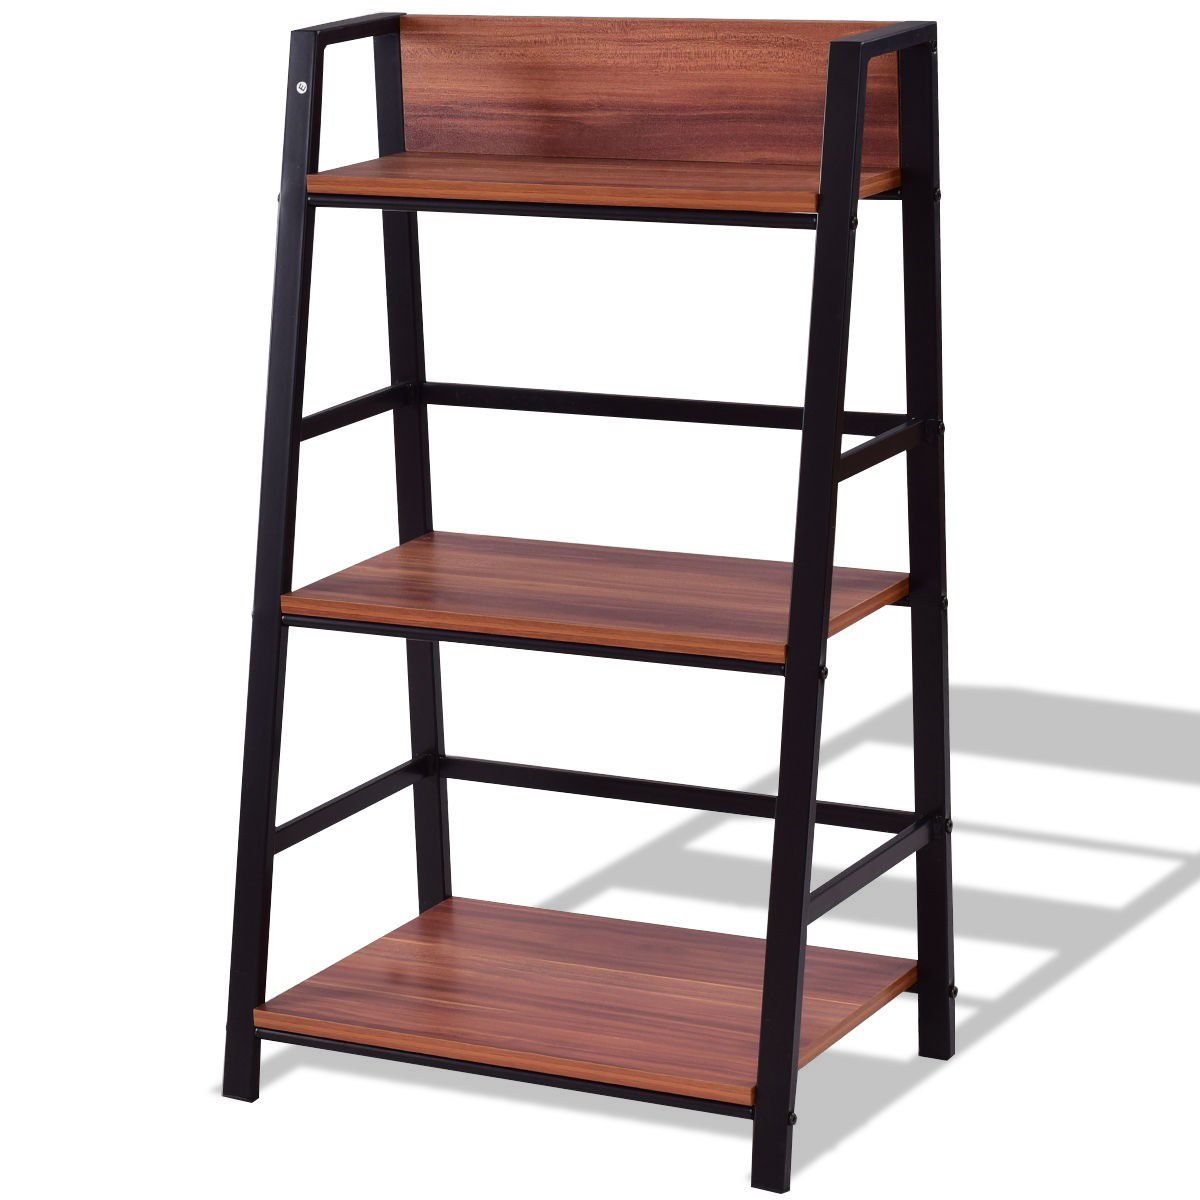 3 Tier Home Office Ladder Shelf Bookshelf Plant Display Stand